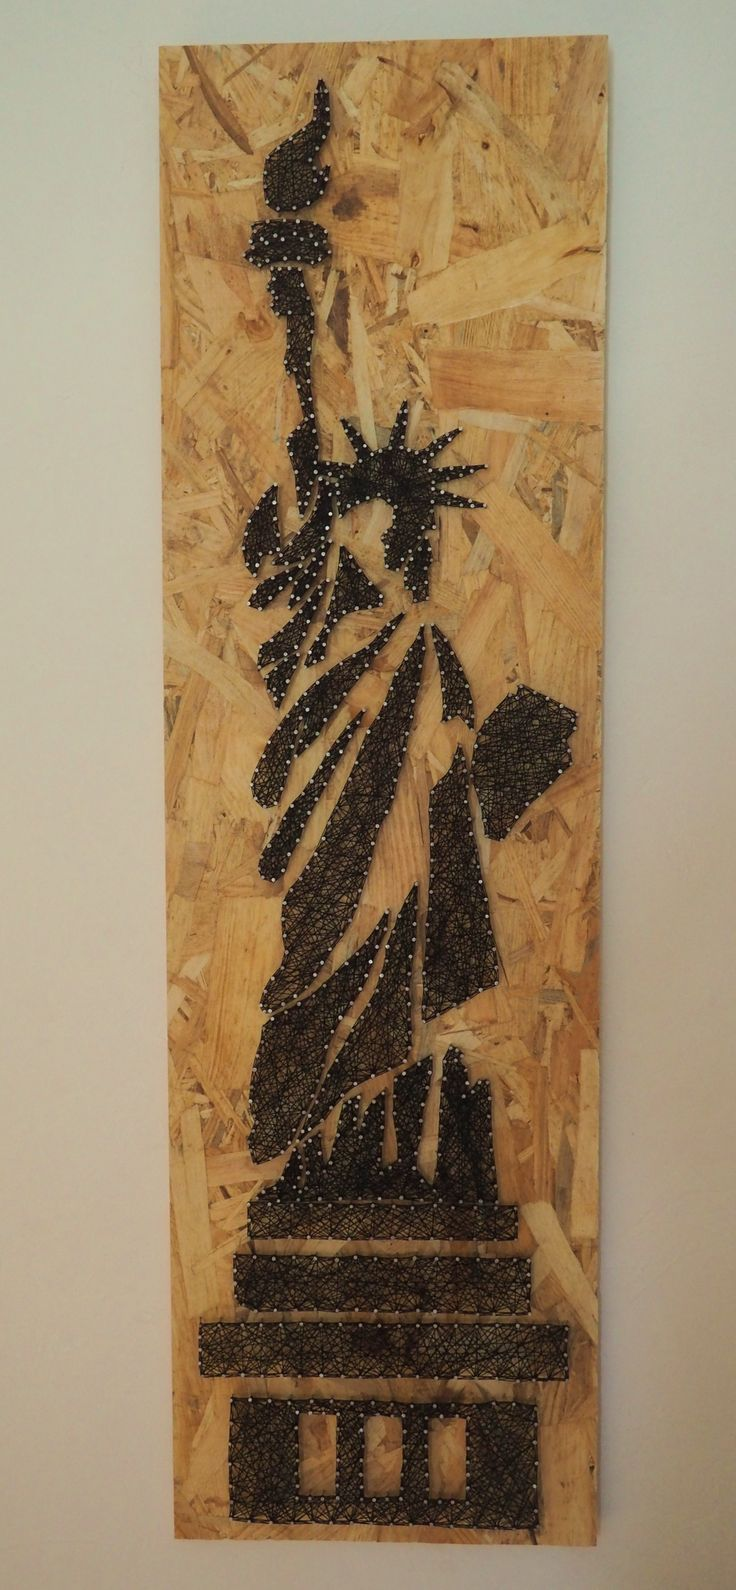 best deco fil images on pinterest spikes string art and thread art